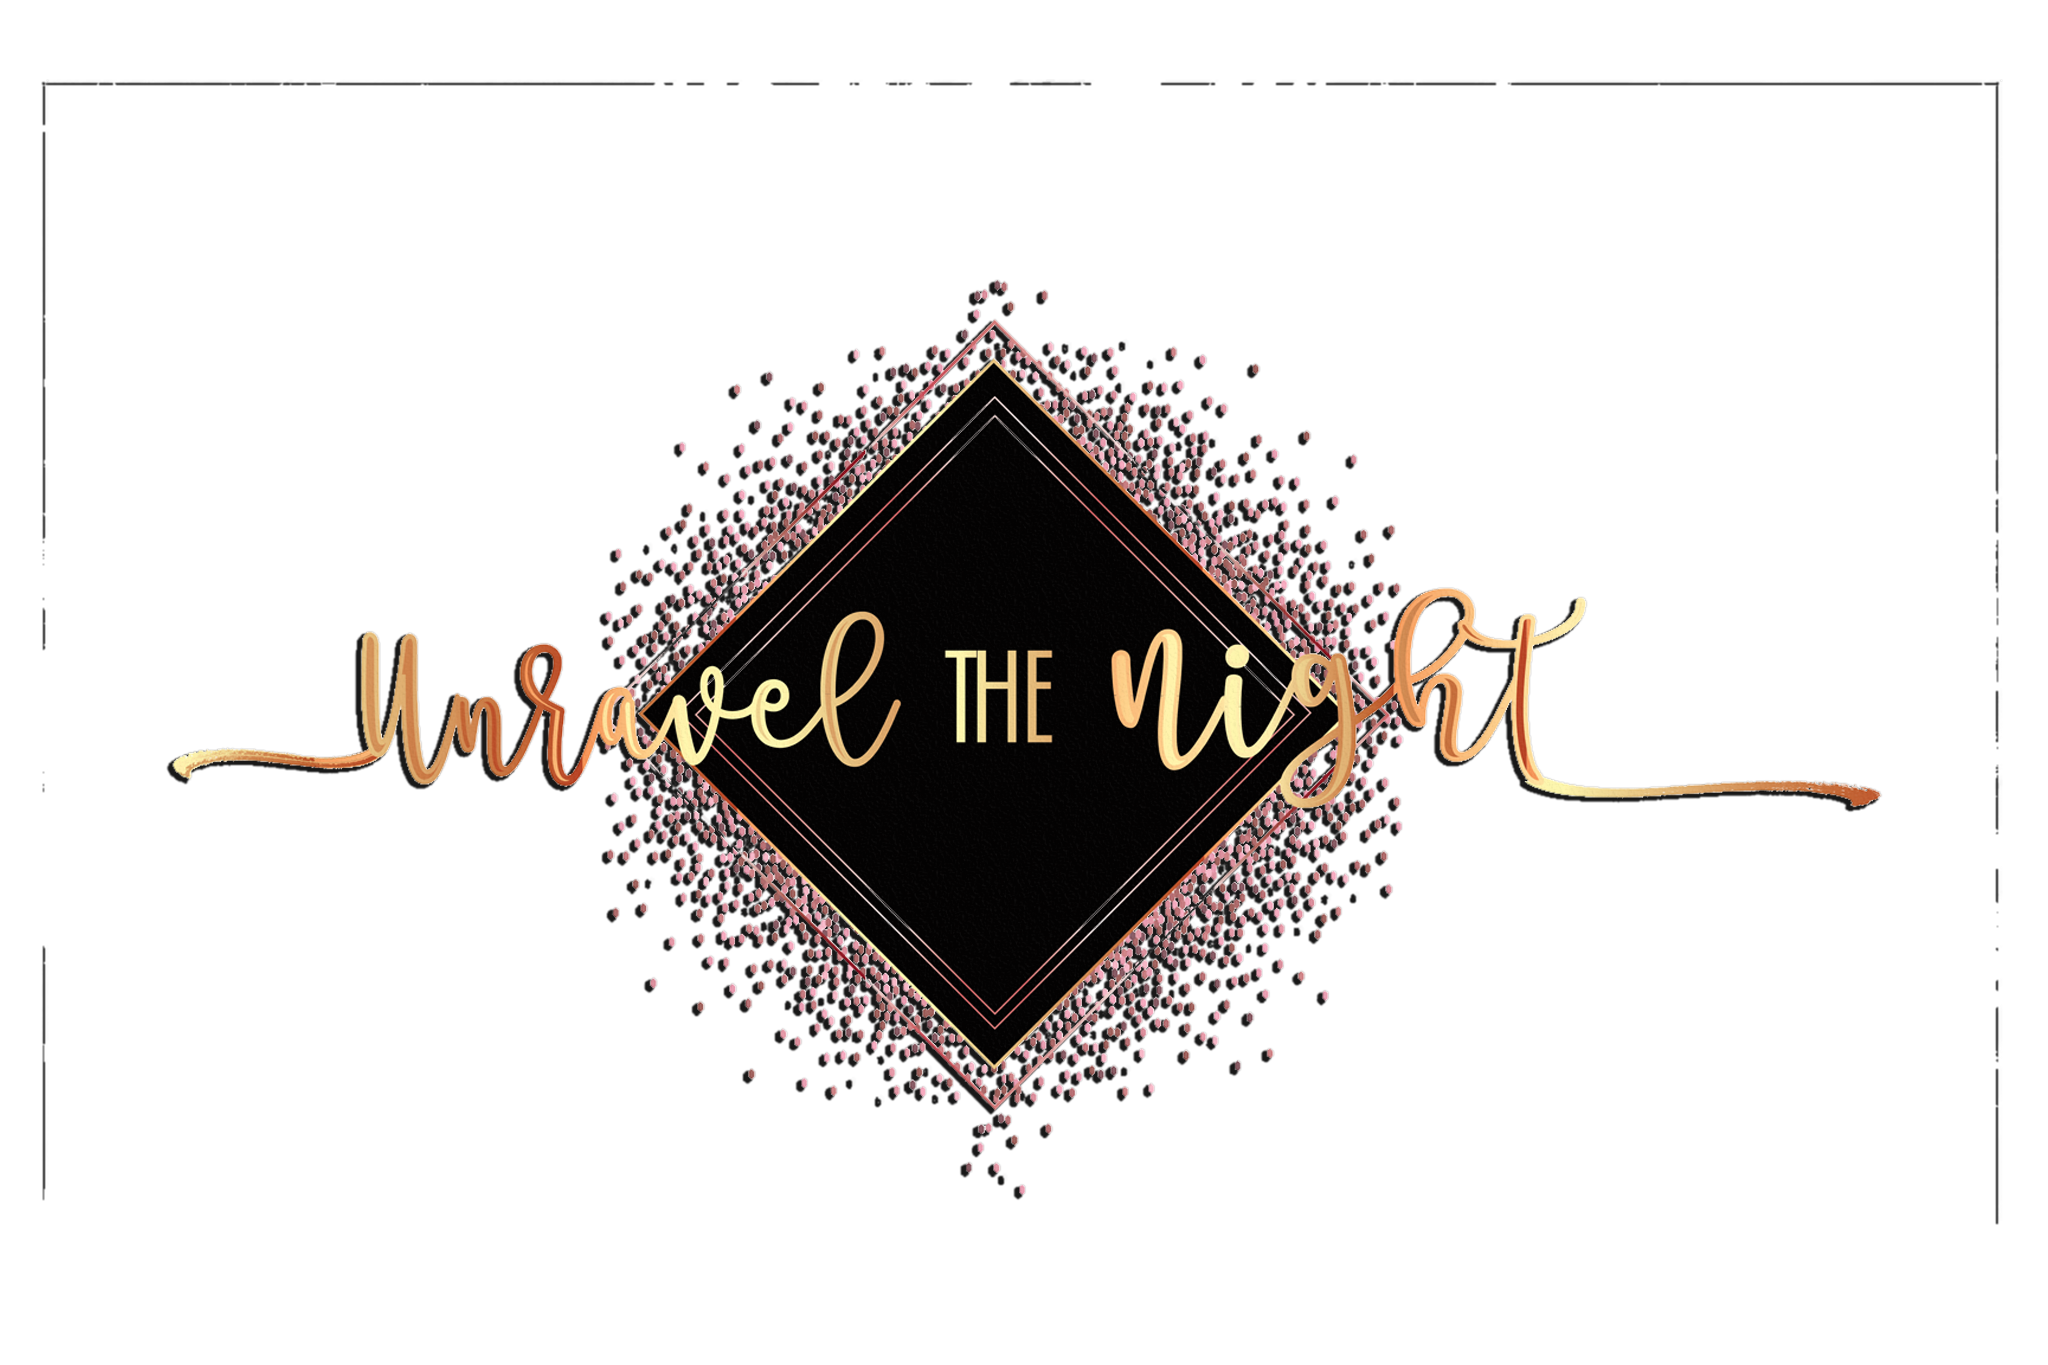 Unravel the Night